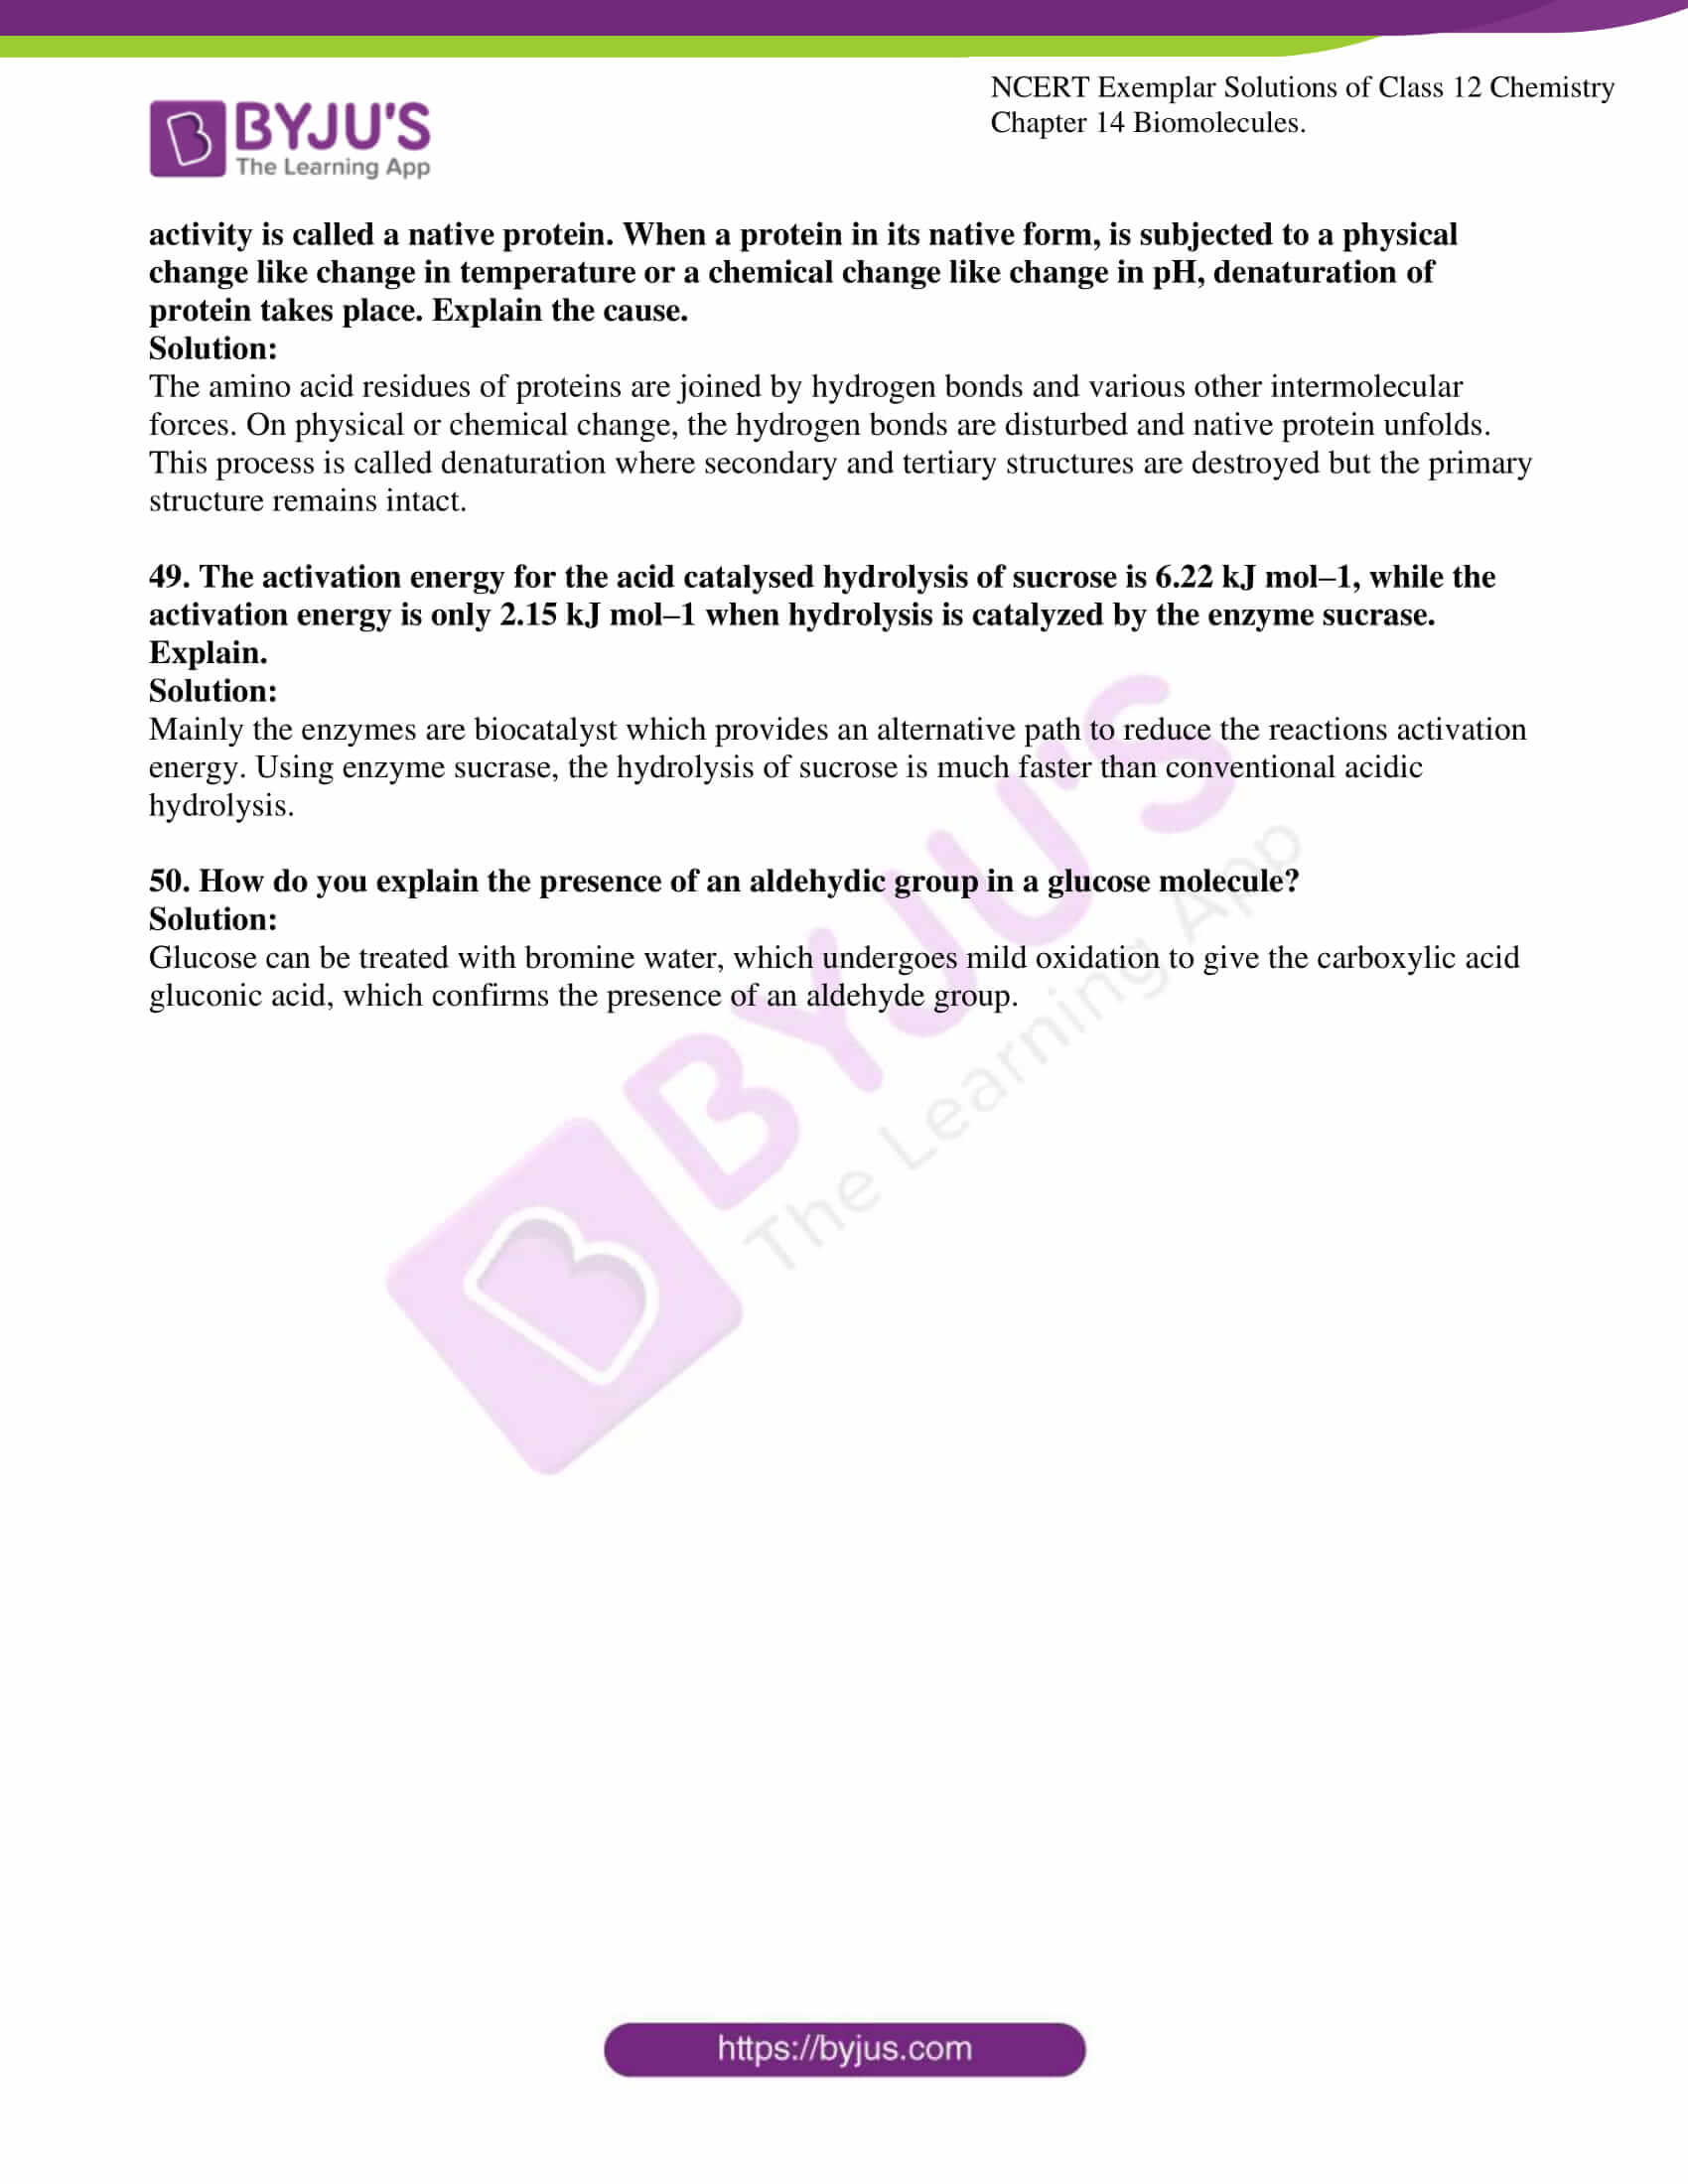 ncert exemplar solutions for class 12 chemistry chapter 14 12